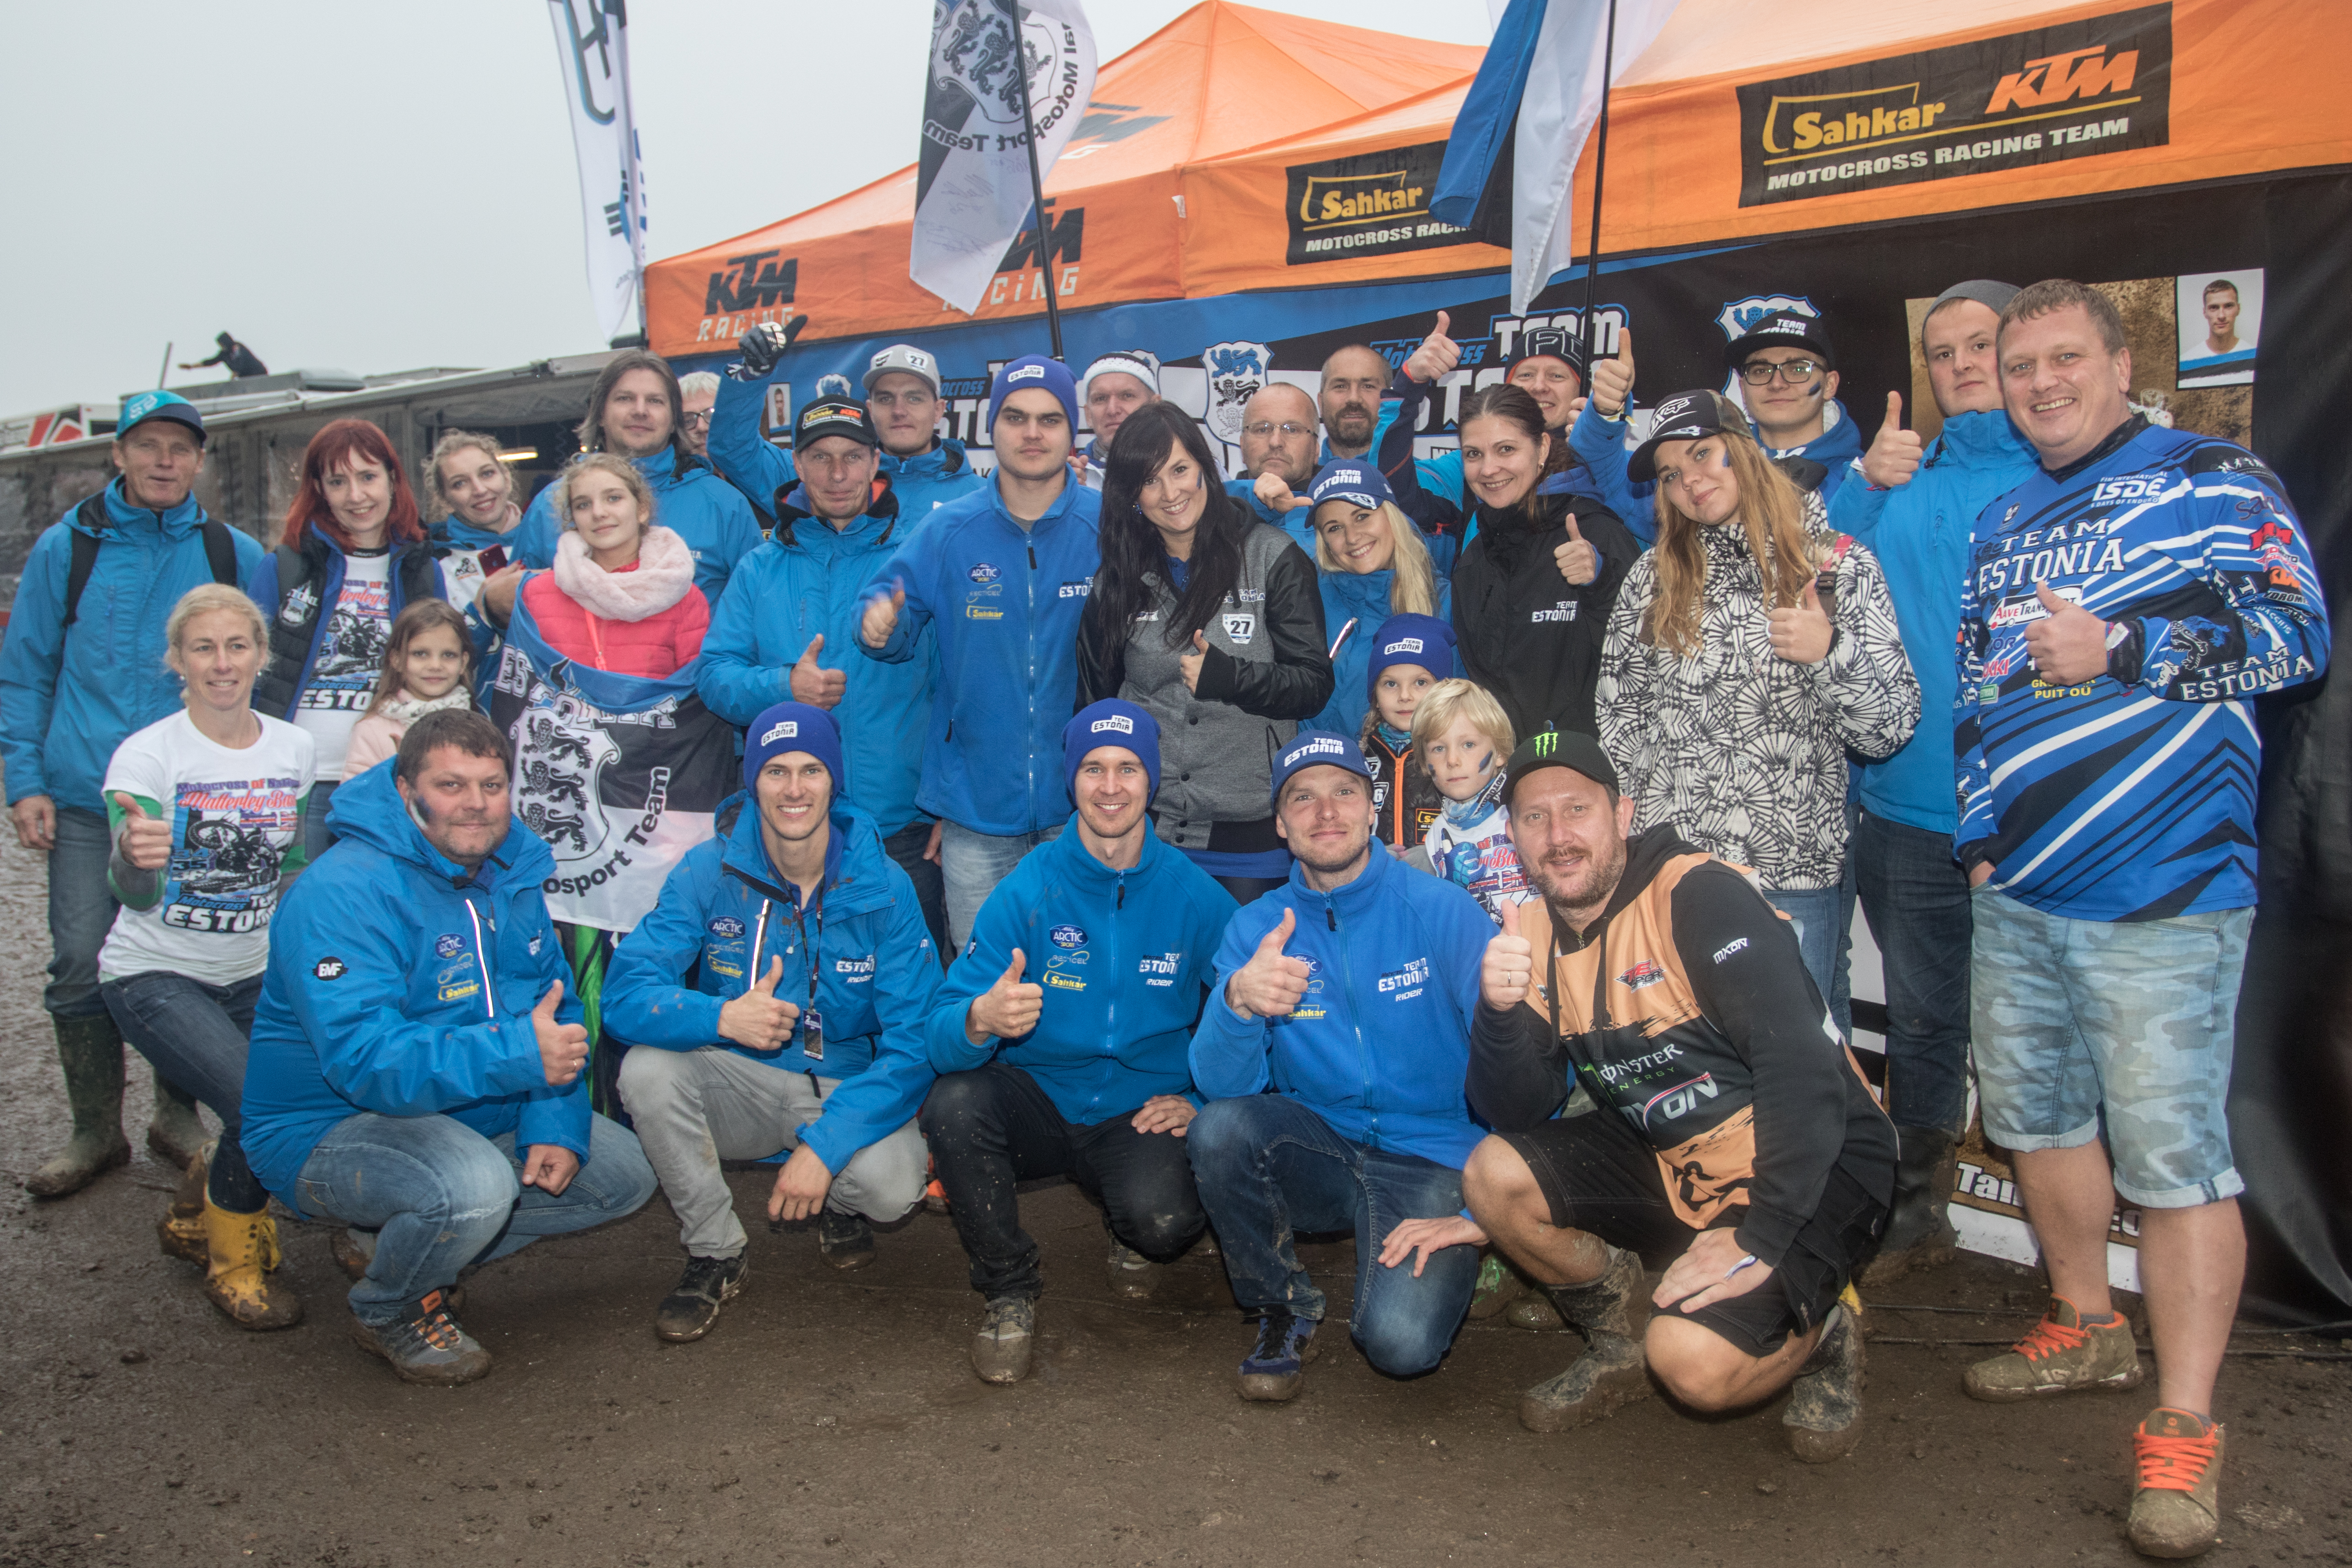 Team Estonia with fans at the 2017 Motocross des Nations in Matterley Basin, the United Kingdom.